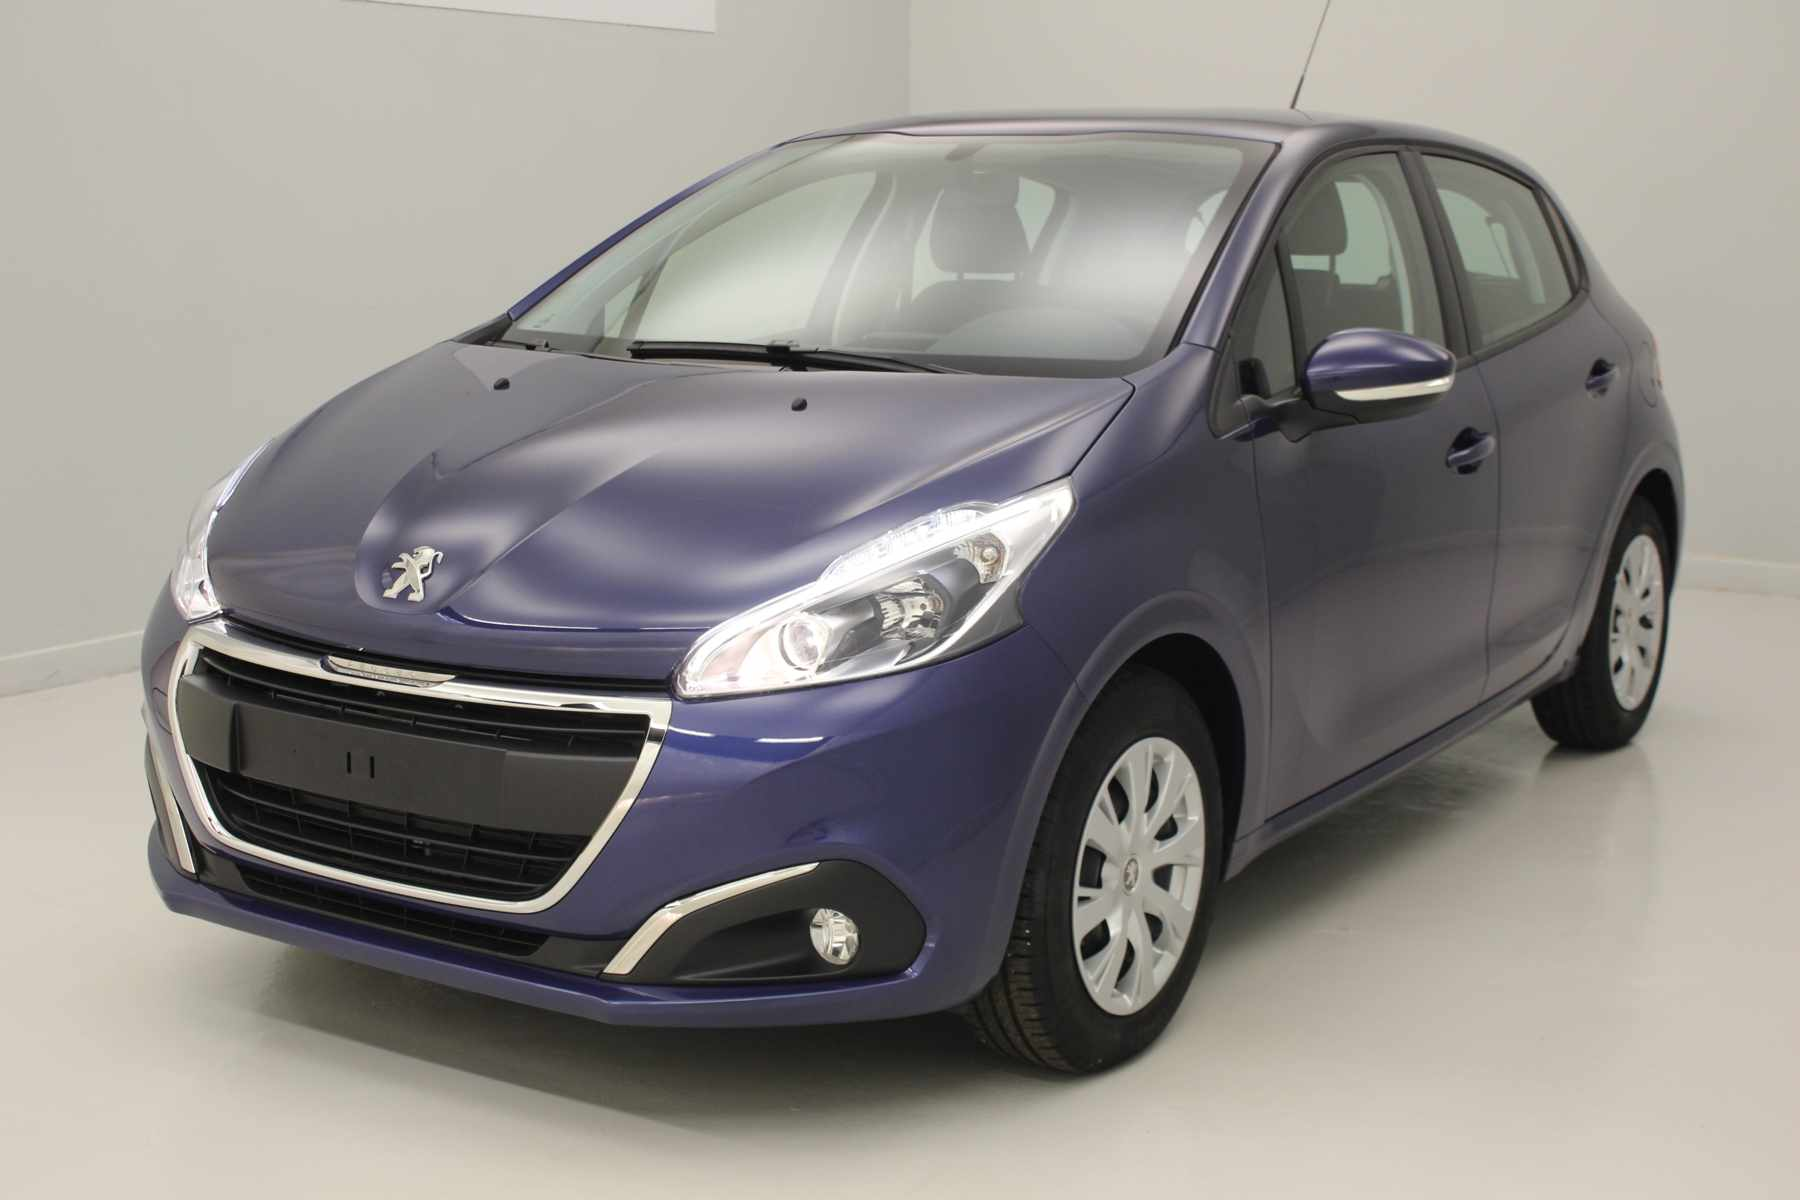 PEUGEOT 208 1.2 PureTech 82ch BVM5 Active Bleu Virtuel + Navigation avec options